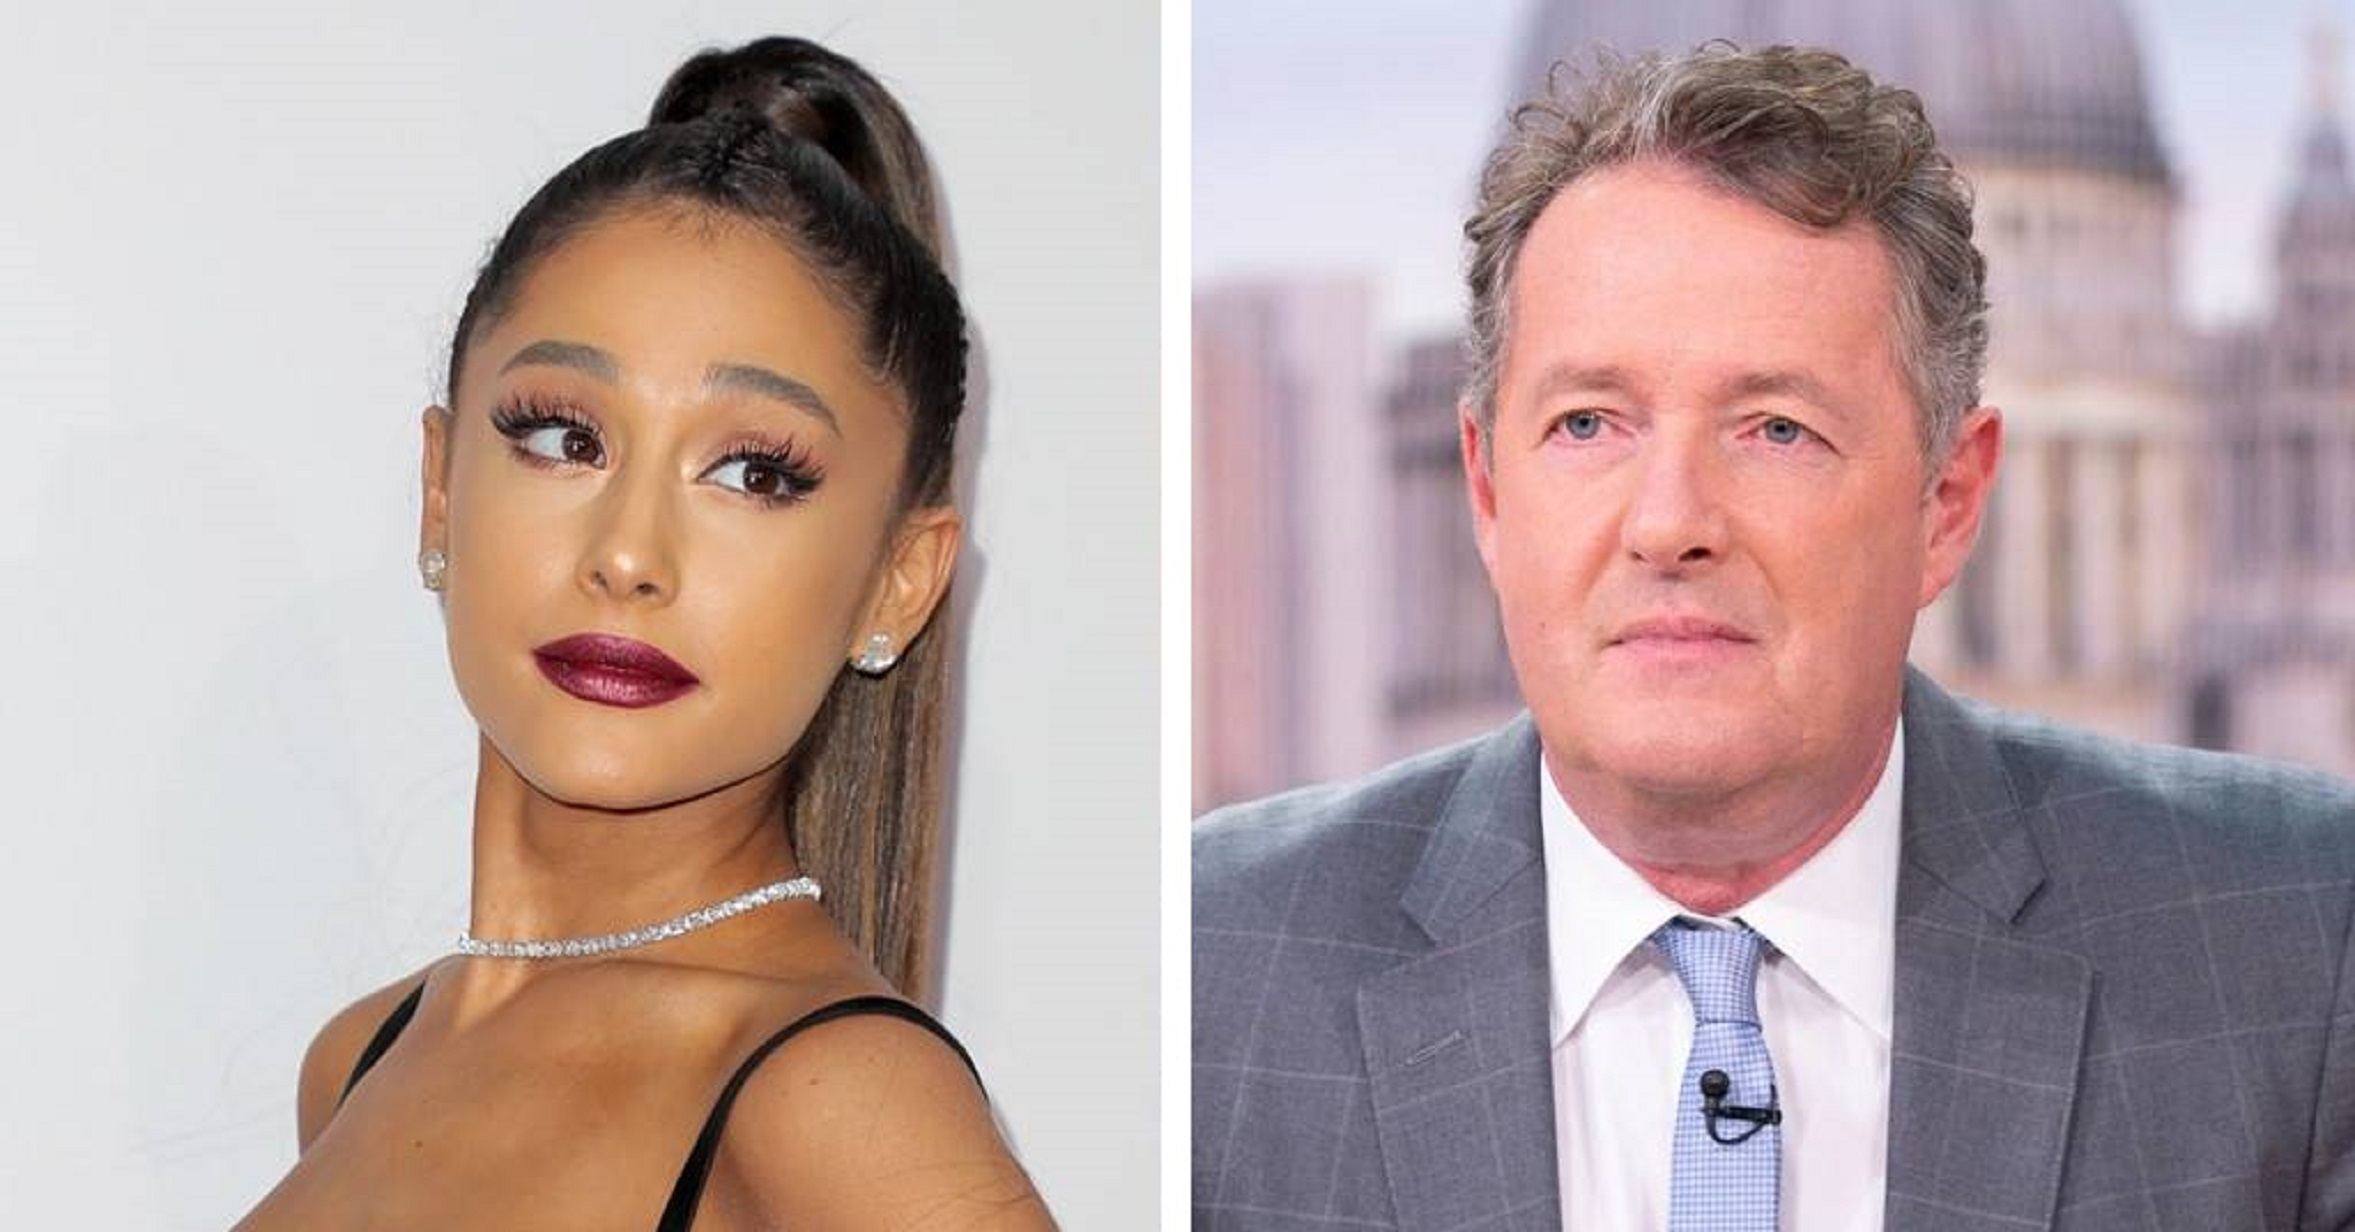 Ariana Grande Claps Back At Piers Morgan After He Accuses Her Of 'Selling Nudity'